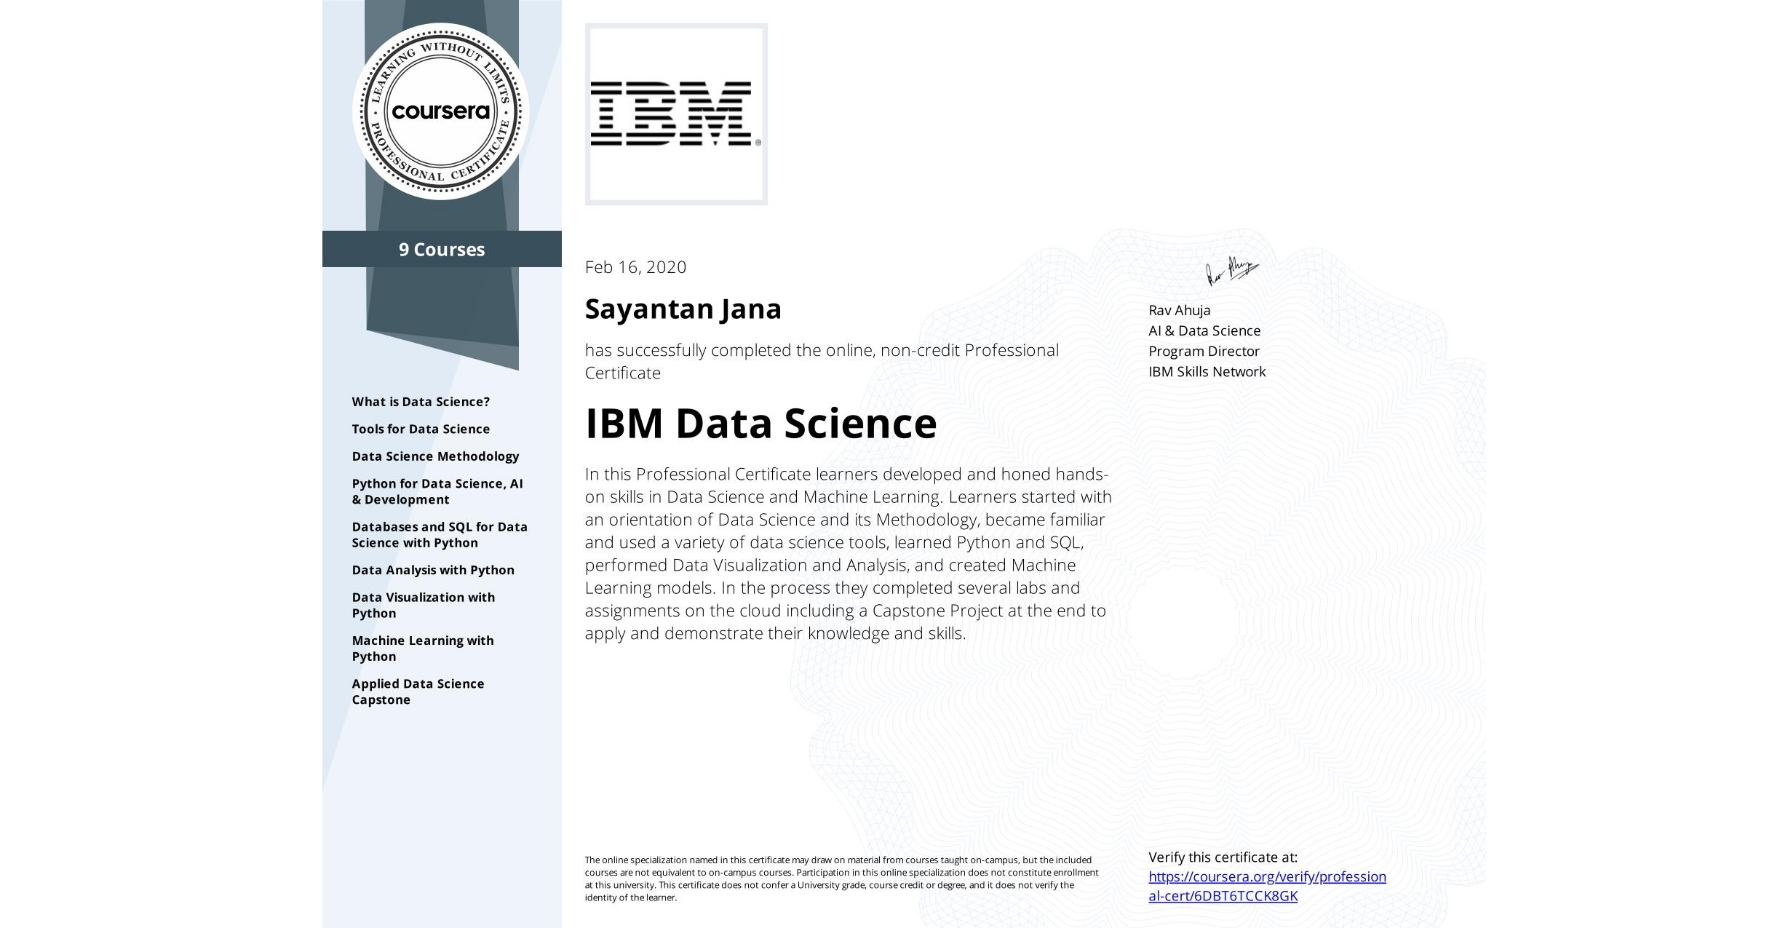 View certificate for Sayantan Jana, IBM Data Science, offered through Coursera. In this Professional Certificate learners developed and honed hands-on skills in Data Science and Machine Learning. Learners started with an orientation of Data Science and its Methodology, became familiar and used a variety of data science tools, learned Python and SQL, performed Data Visualization and Analysis, and created Machine Learning models.  In the process they completed several labs and assignments on the cloud including a Capstone Project at the end to apply and demonstrate their knowledge and skills.